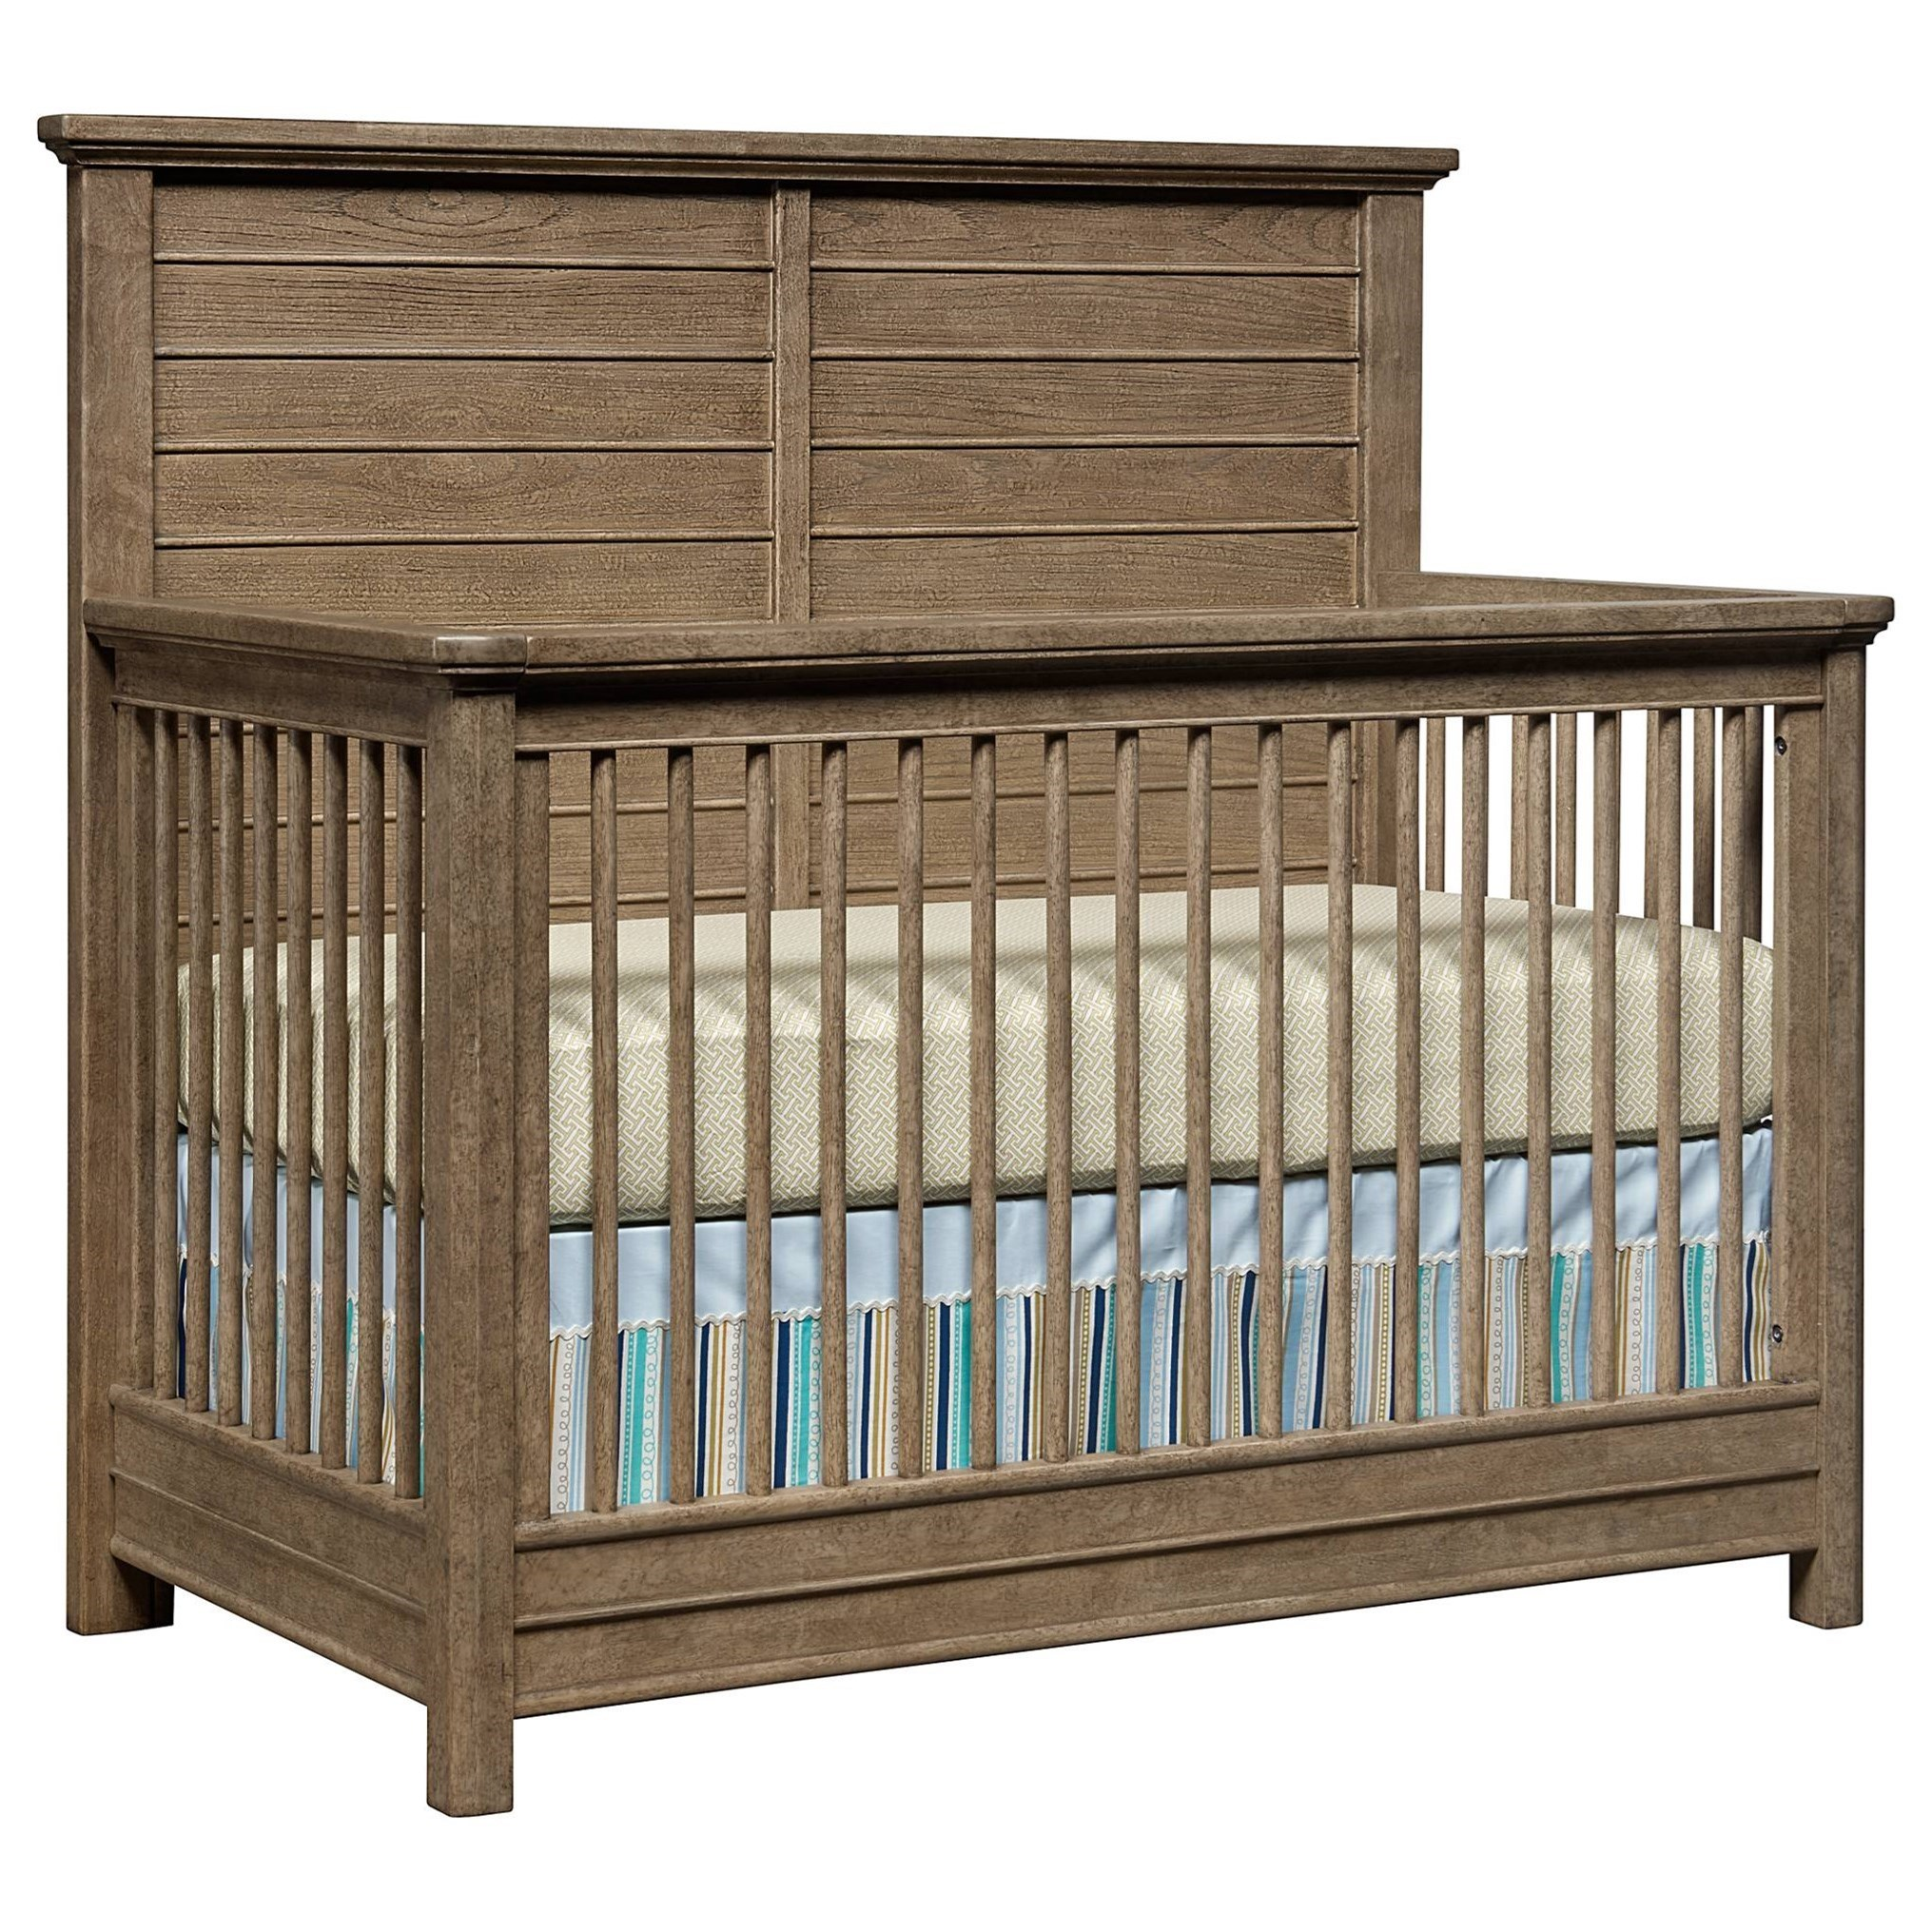 Stone & Leigh Furniture Driftwood Park Built To Grow Crib - Item Number: 536-13-50